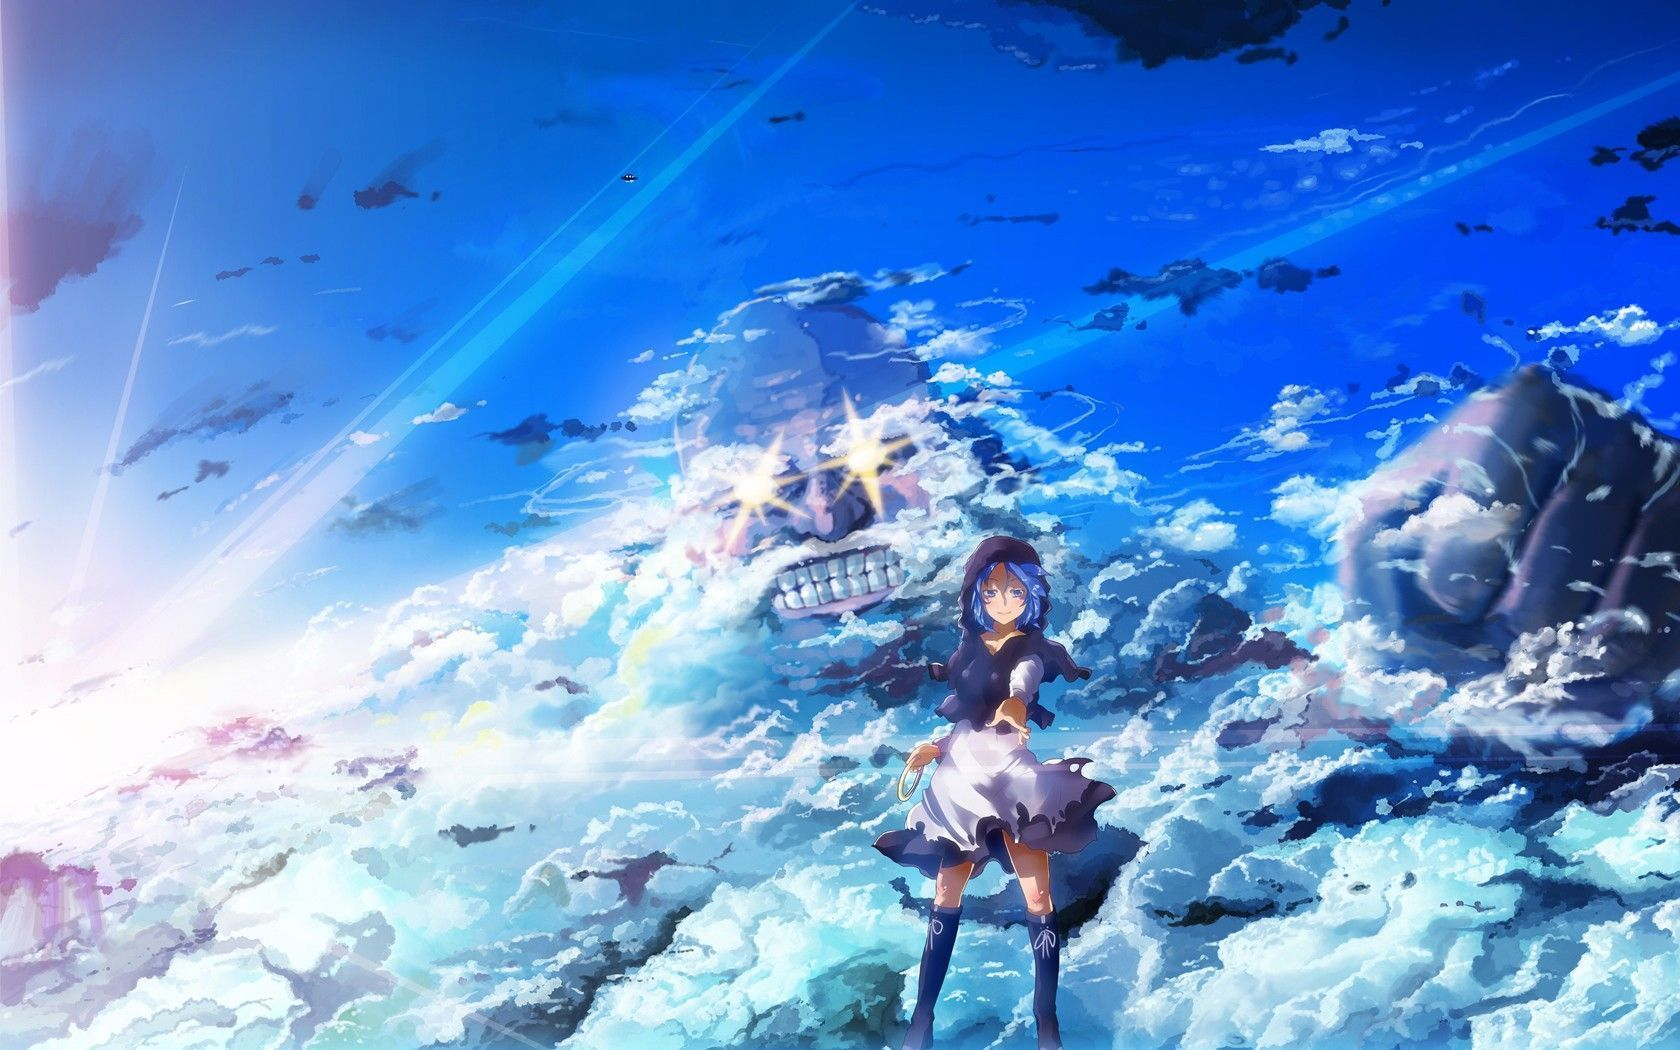 Free Download Cool Blue Anime Image